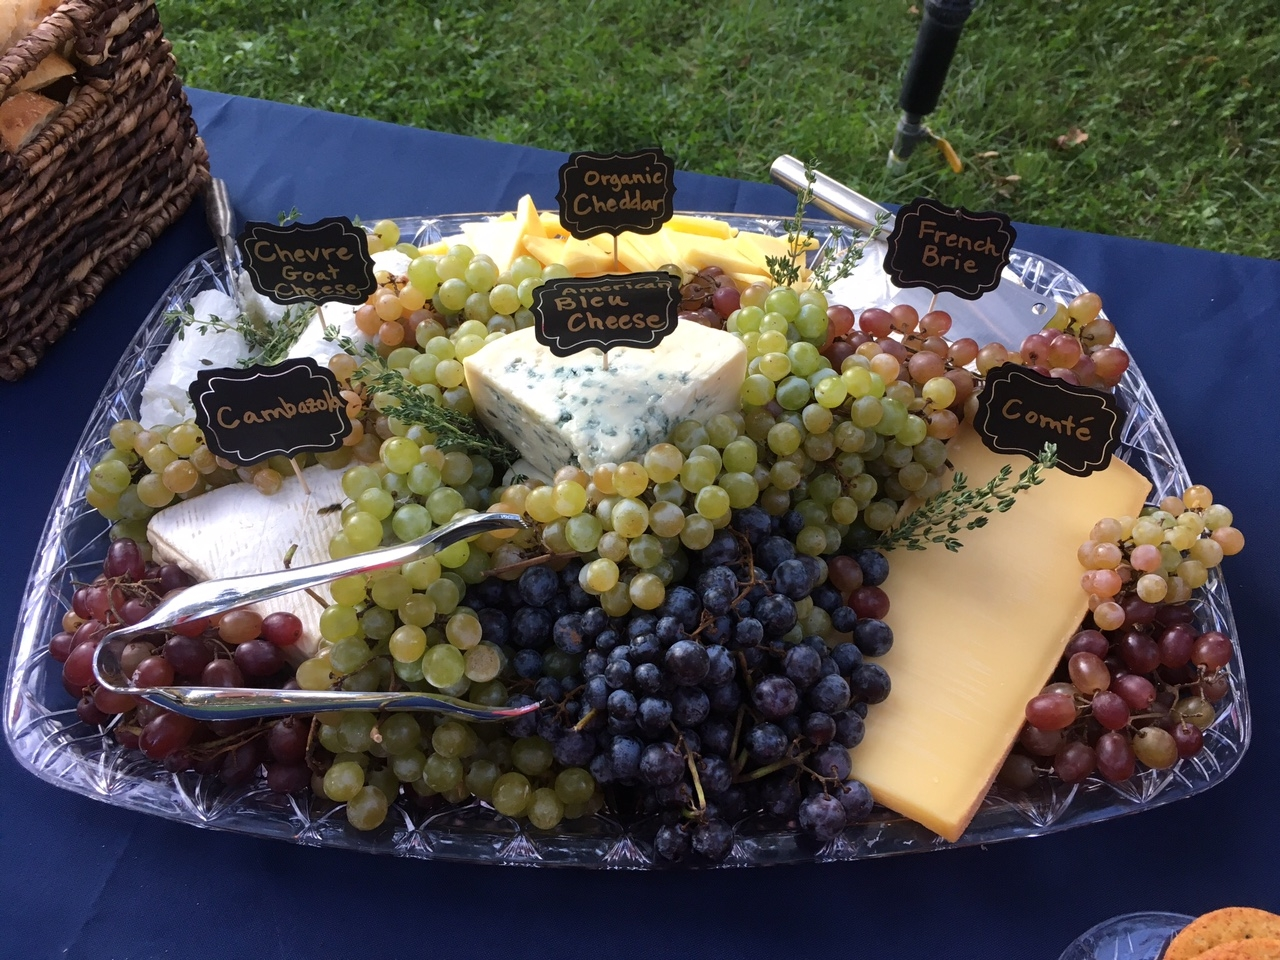 Gourmet Cheese Platter with local Heirloom Grapes